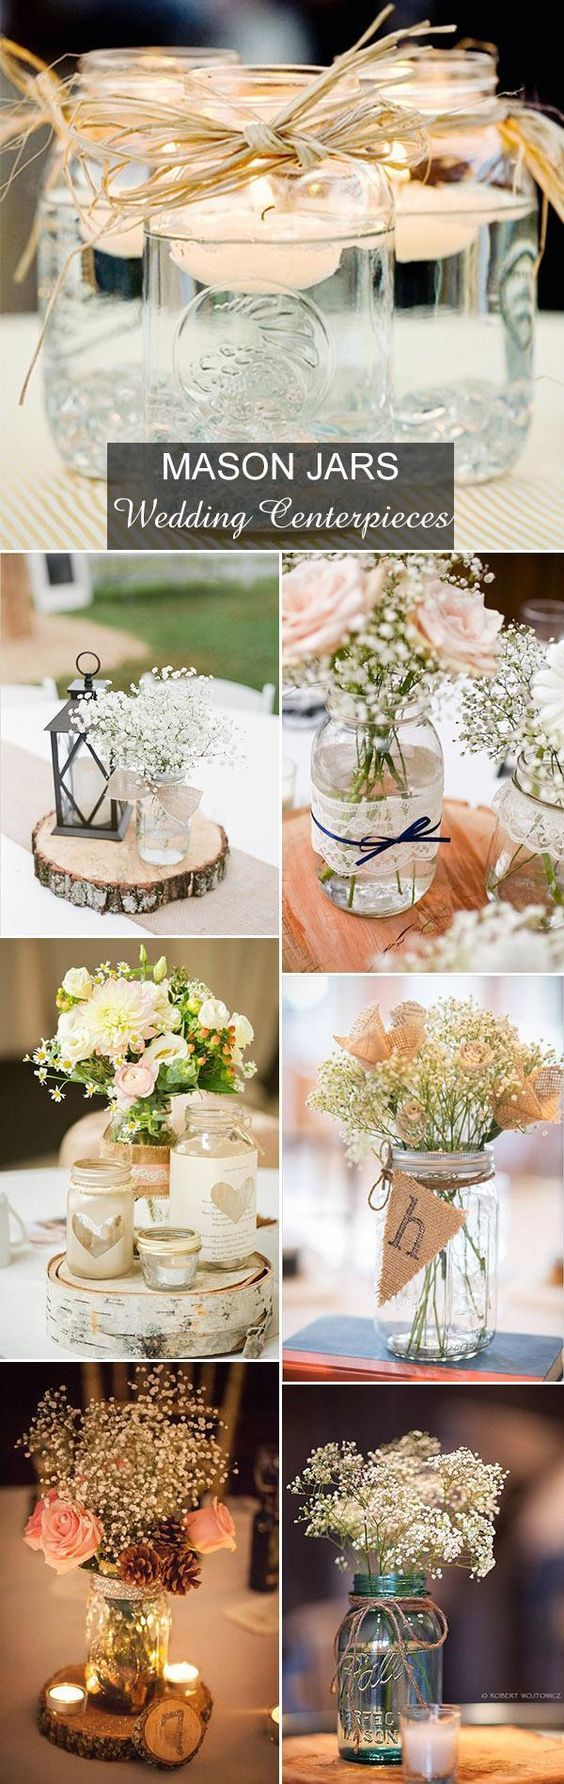 These country rustic mason jars are awesome wedding centerpiece